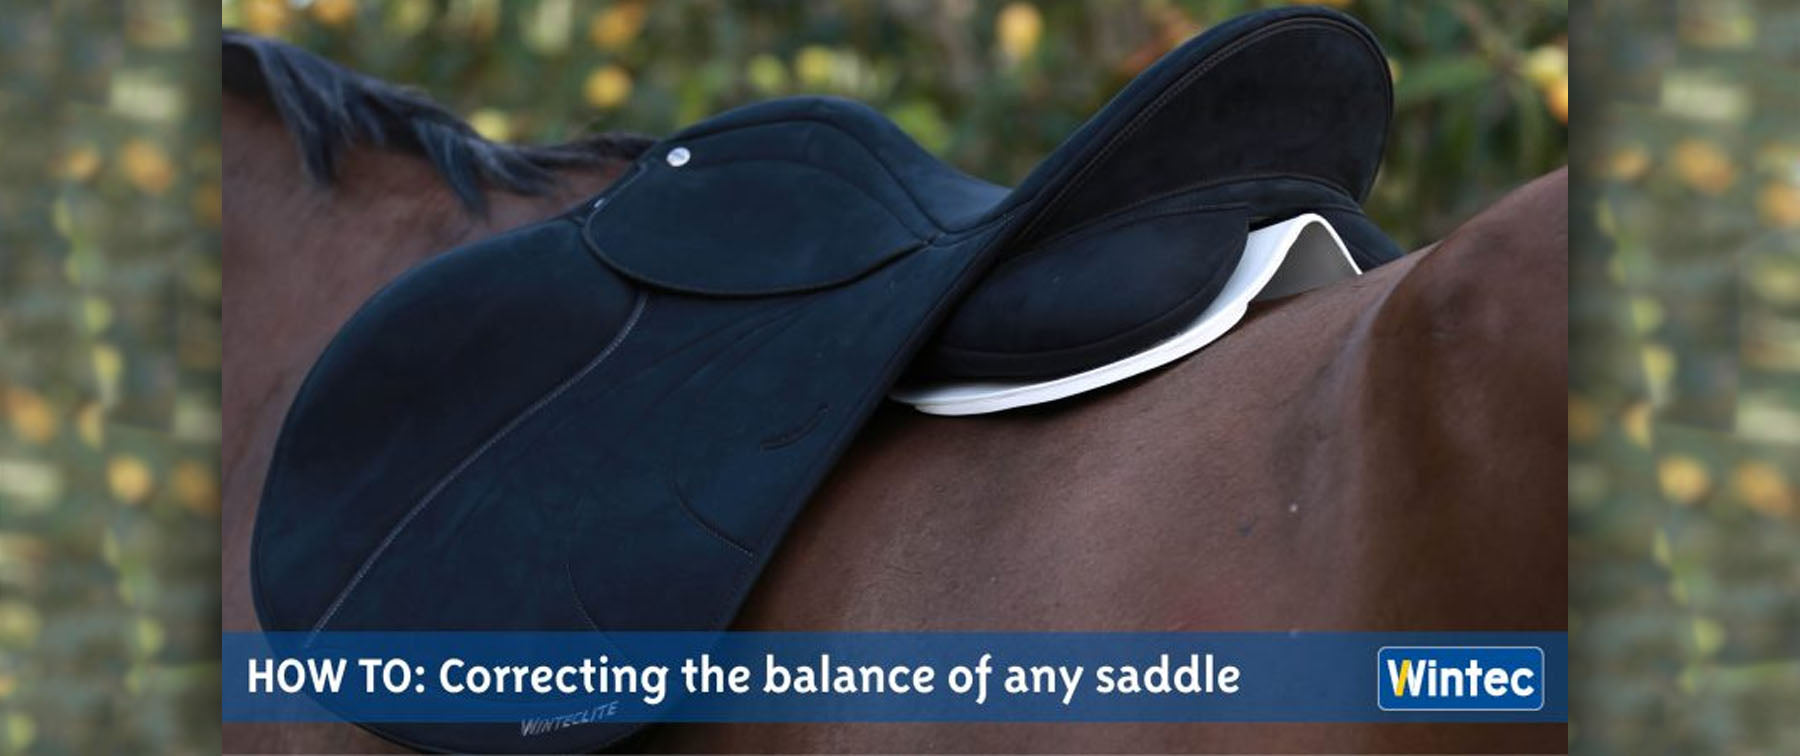 How to easily correct your saddle balance